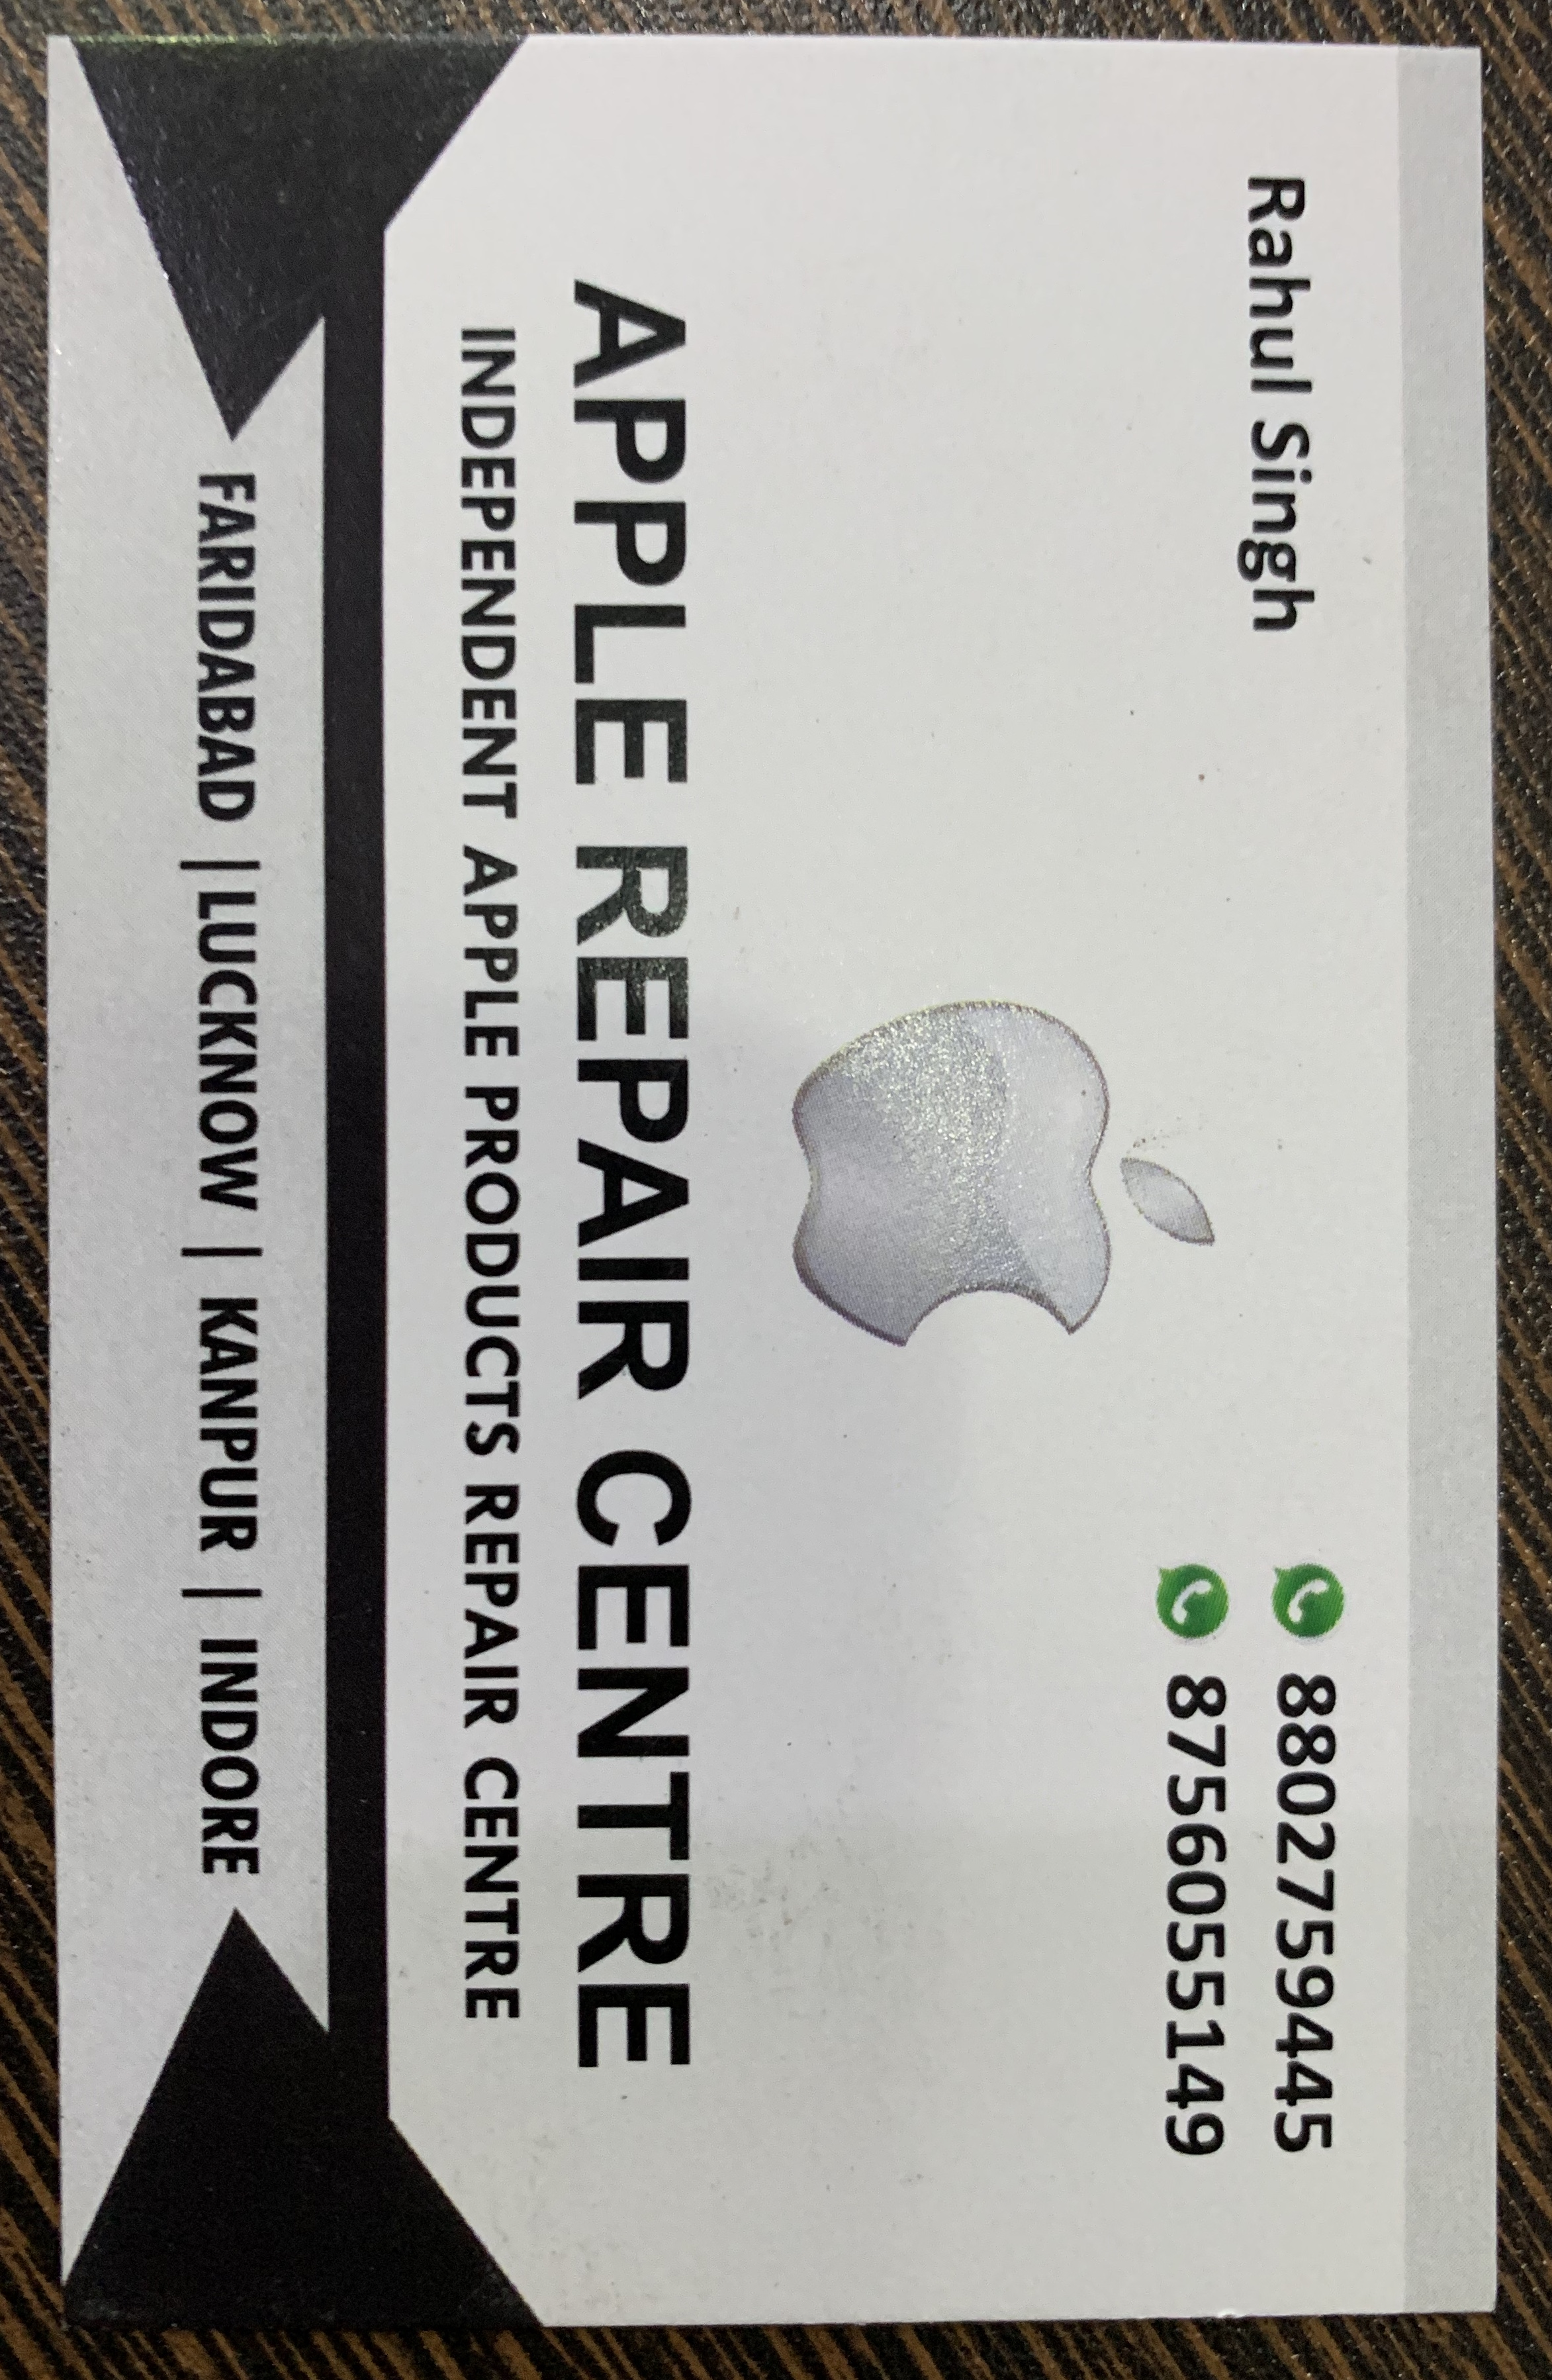 Apple Service Center Kanpur in Kanpur